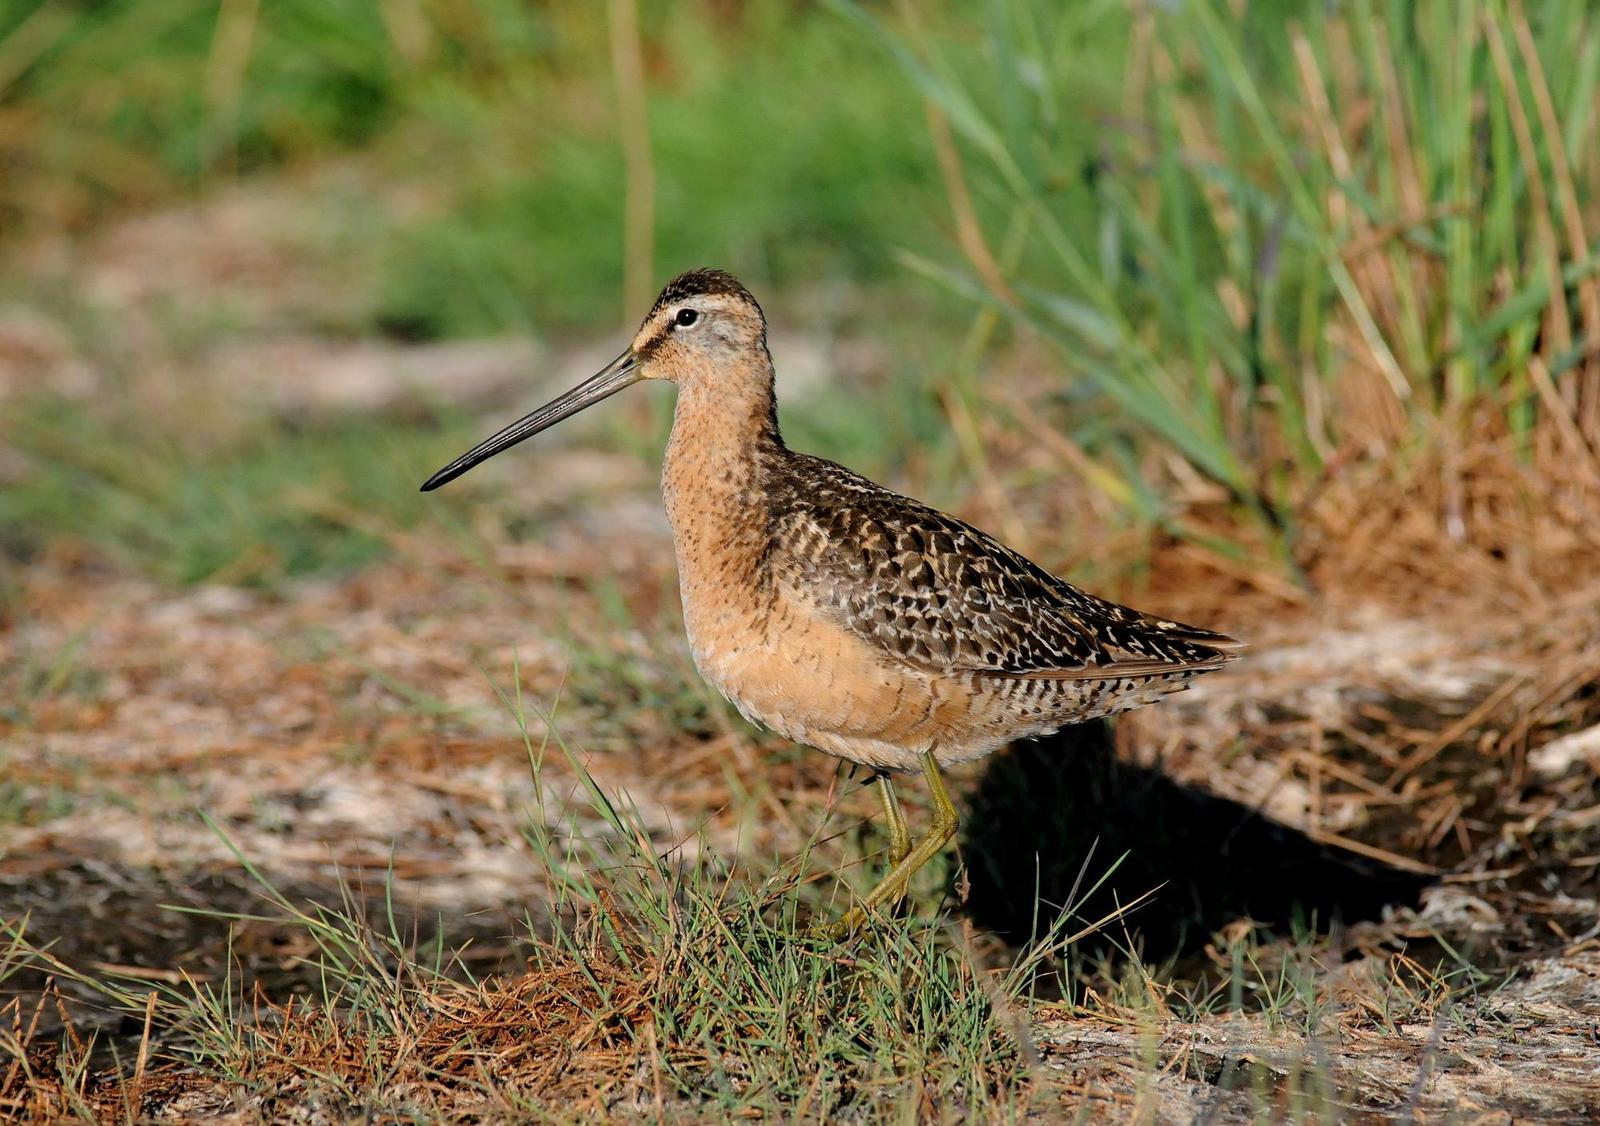 Long-billed Dowitcher Photo by Steven Mlodinow